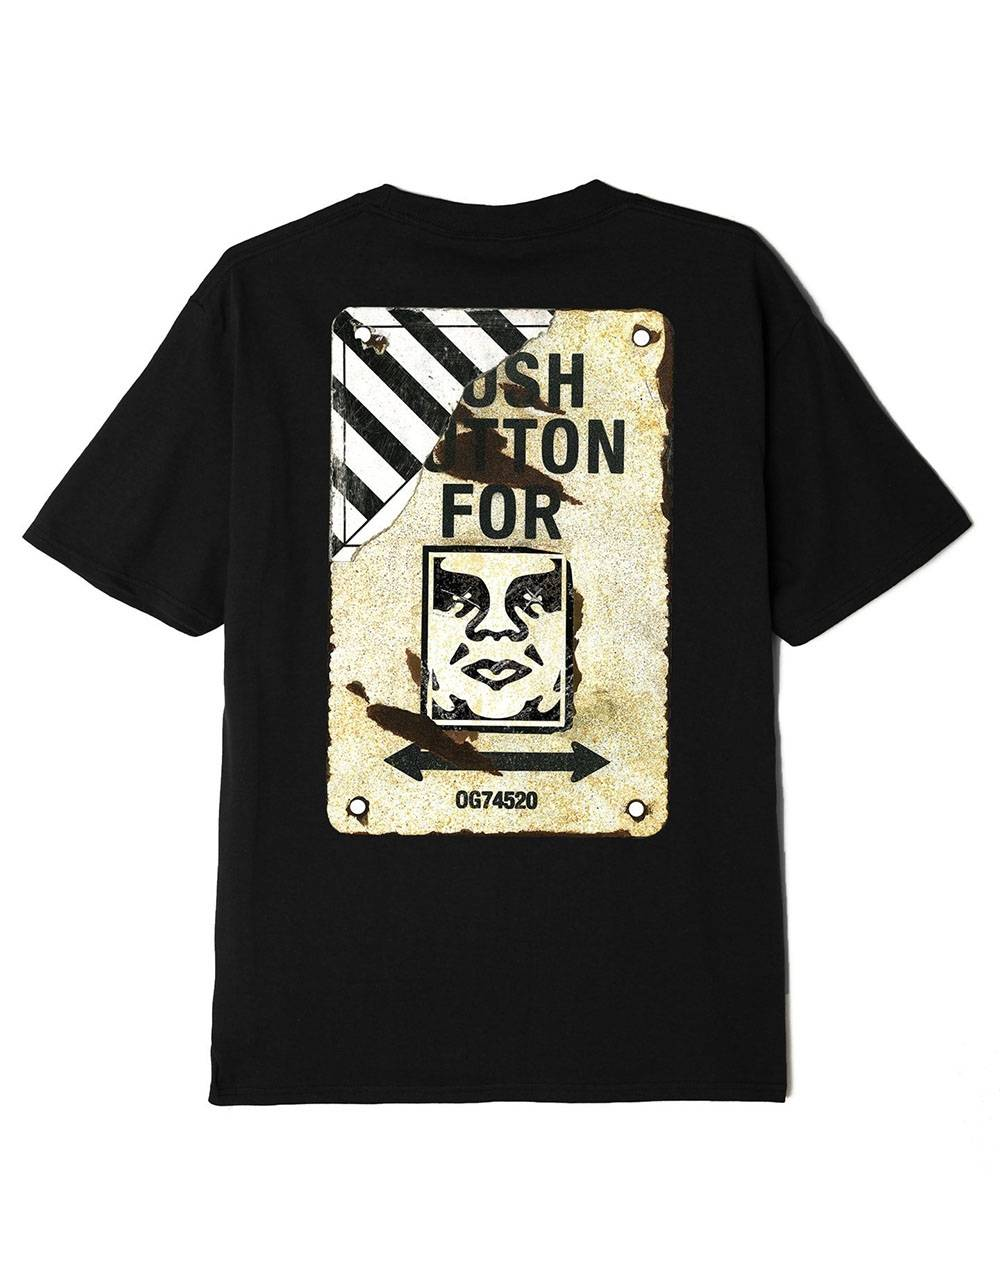 Obey Crosswalk sign sustainable t-shirt - black obey T-shirt 55,00€